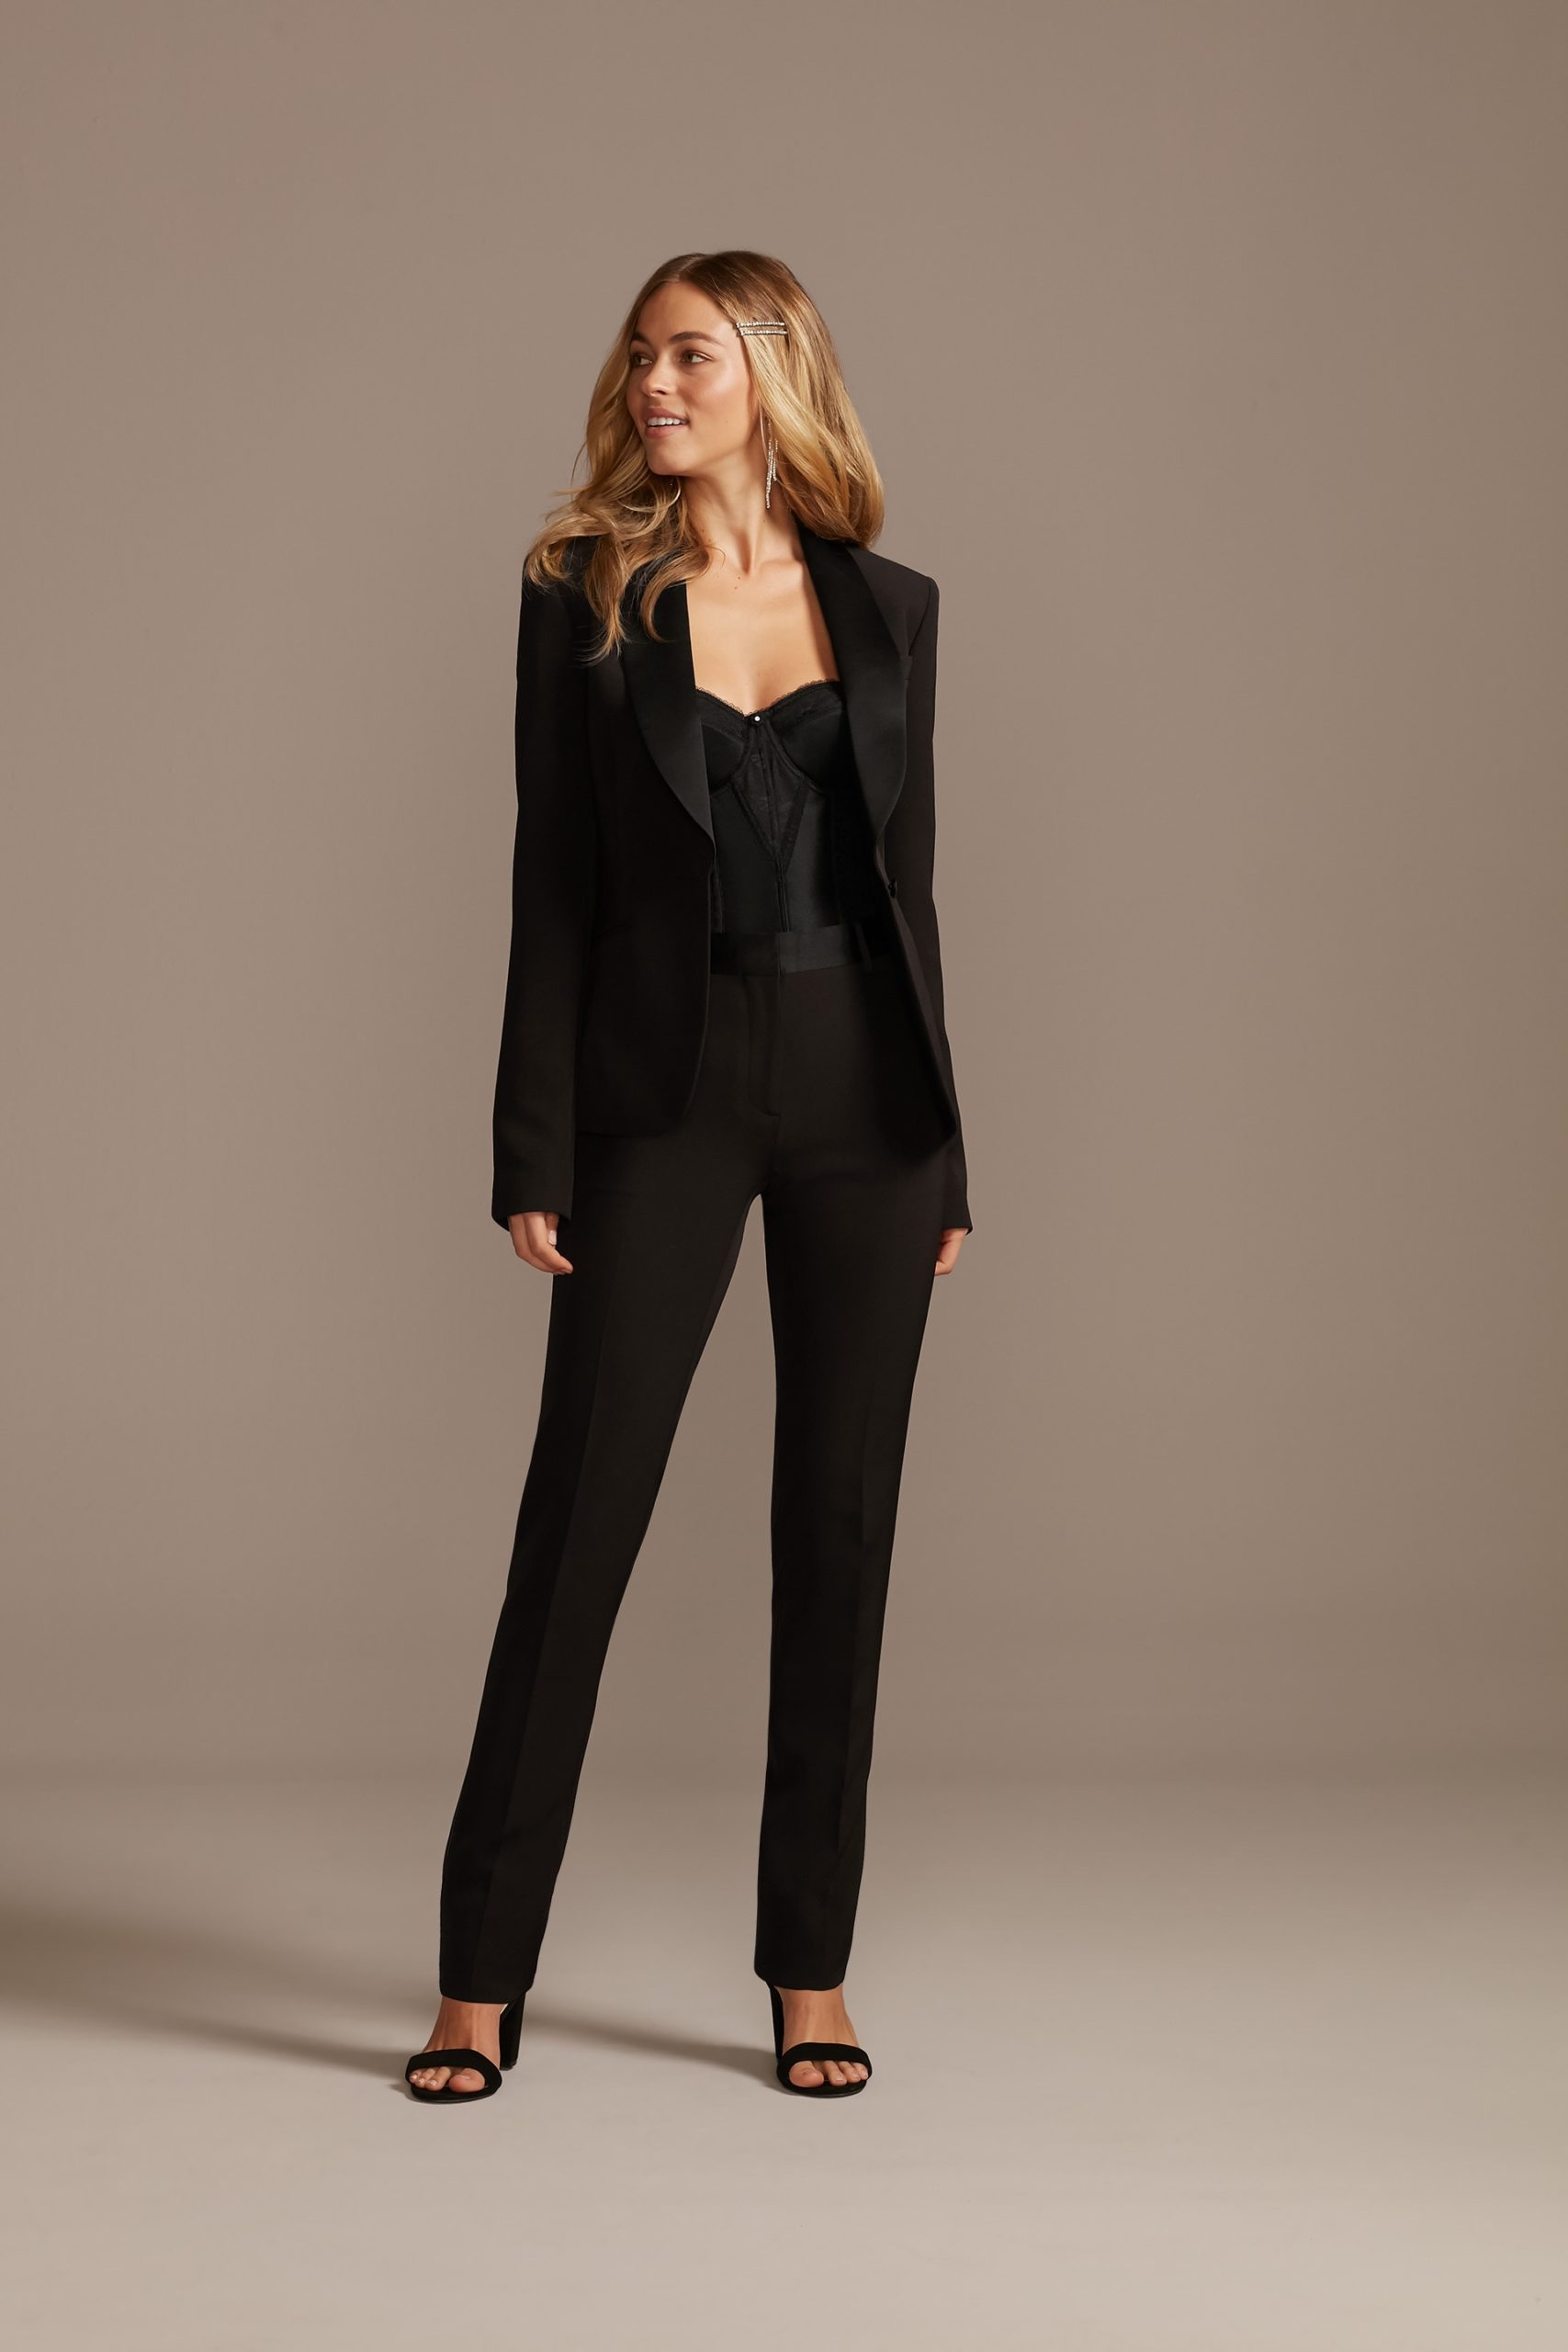 Black Bridal Pantsuit